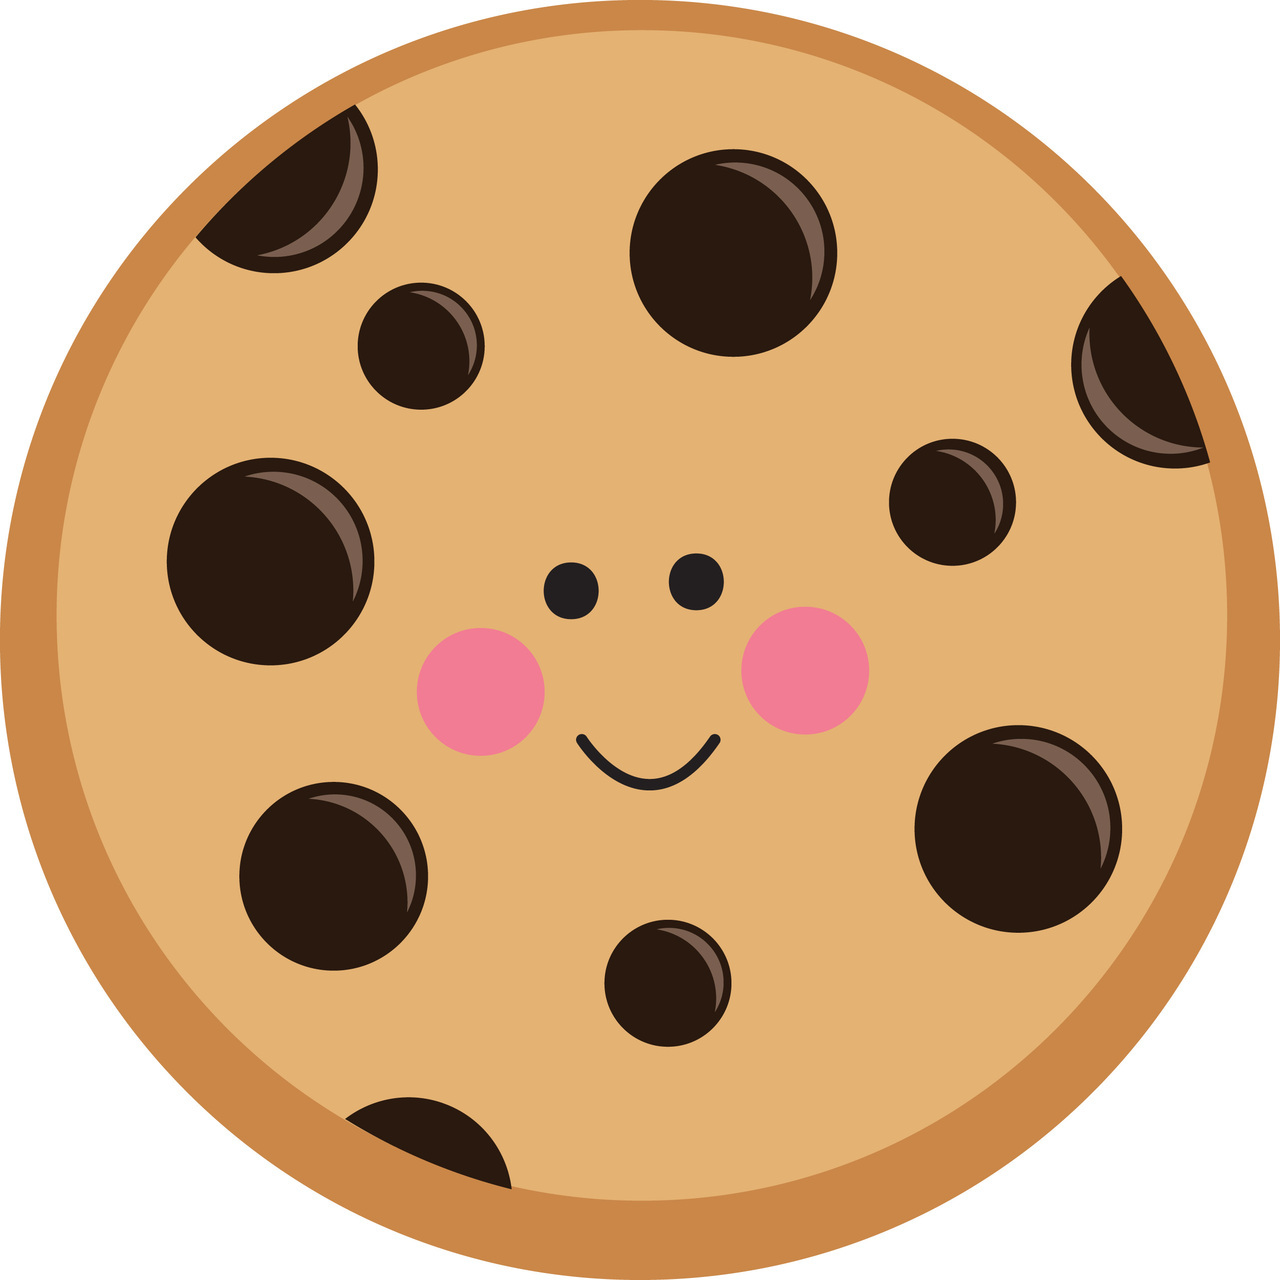 1280x1280 Circle Clipart Biscuit